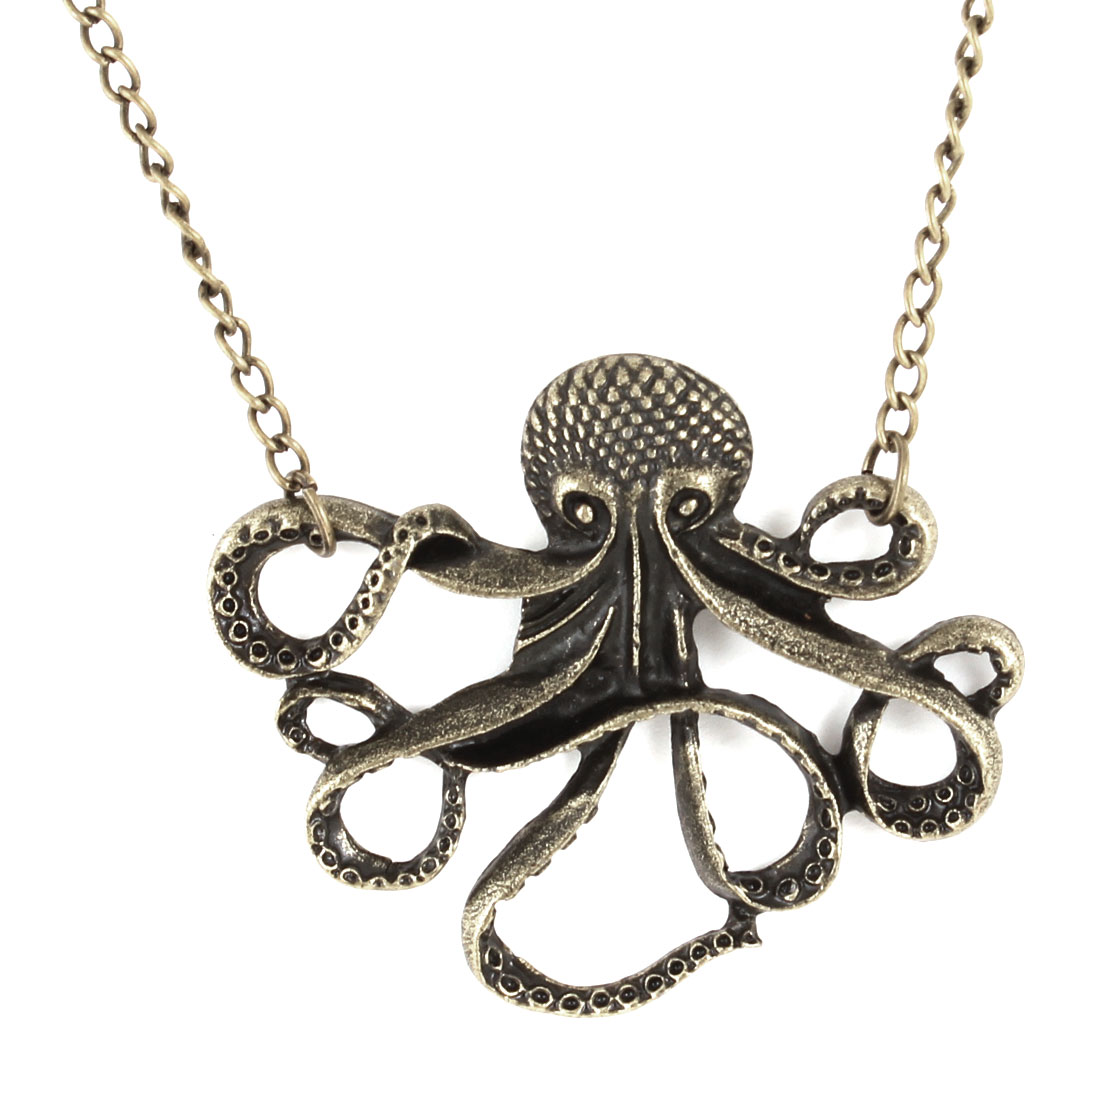 70cm Long Chain Octopus Ornament Pendants Necklace Bronze Tone